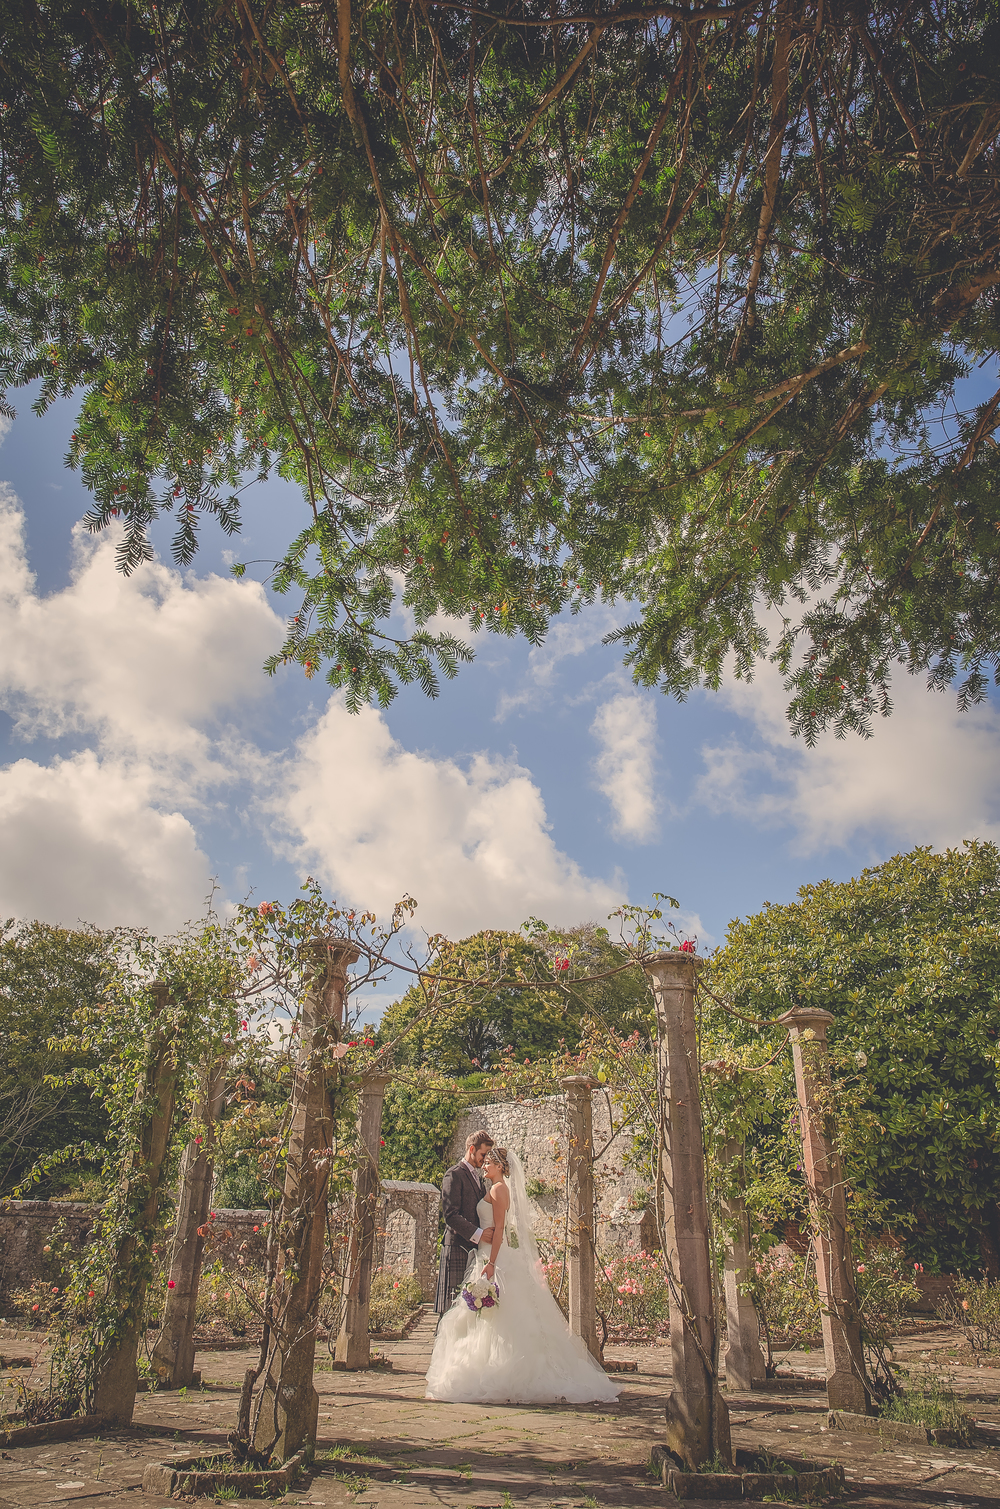 amazing wedding photoraphy //  castle wedding venue Wales UK // Rocksalt Photography